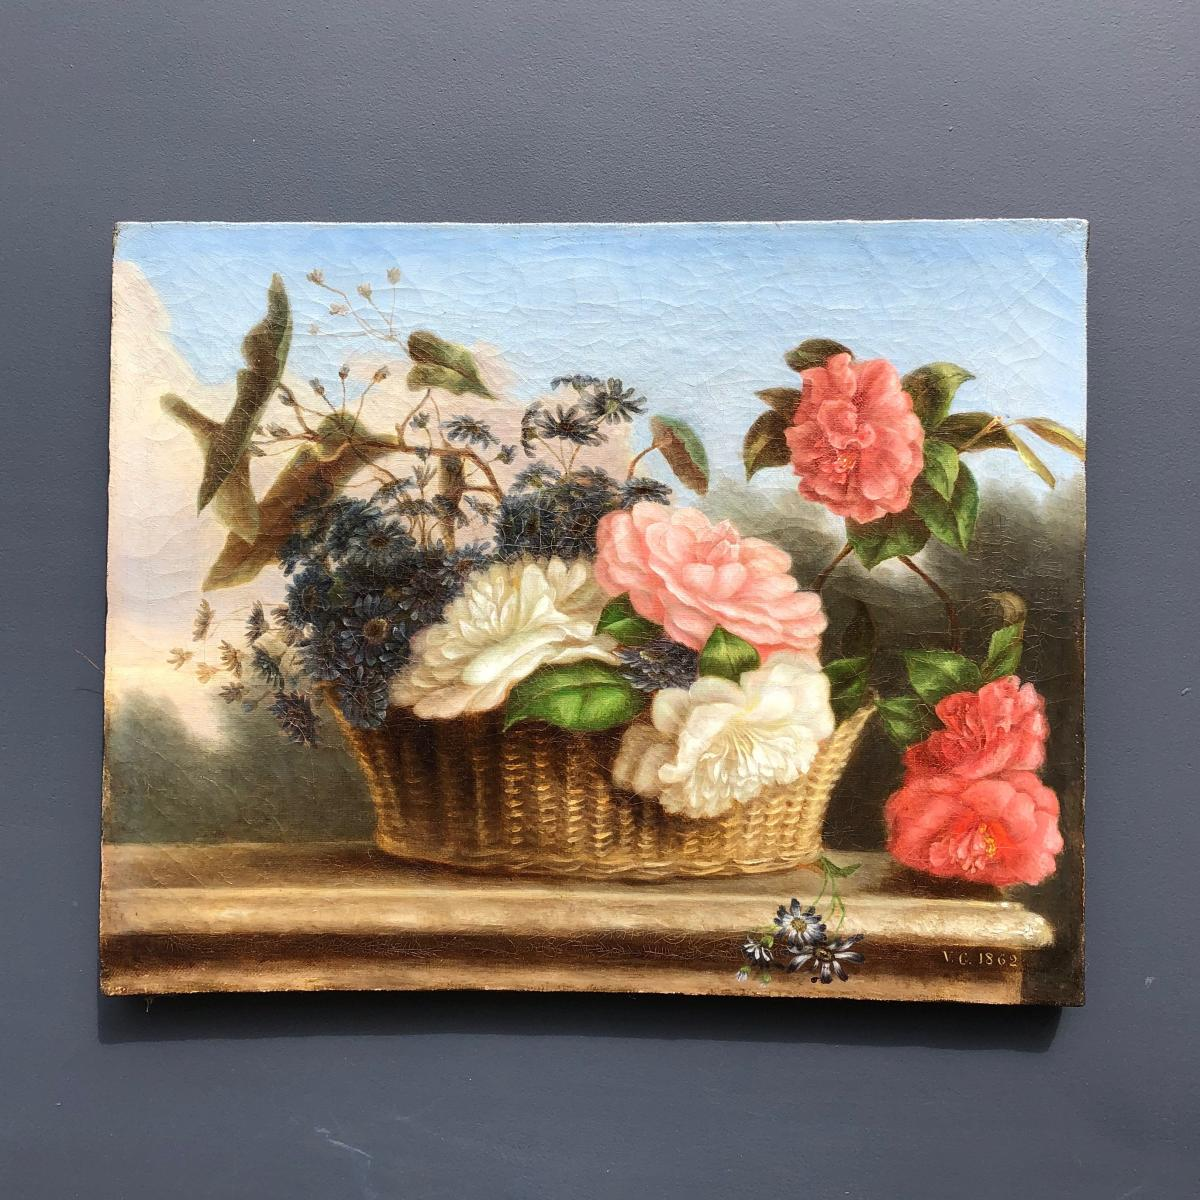 Basket Of Flowers, Oil On Canvas, Dated 1862